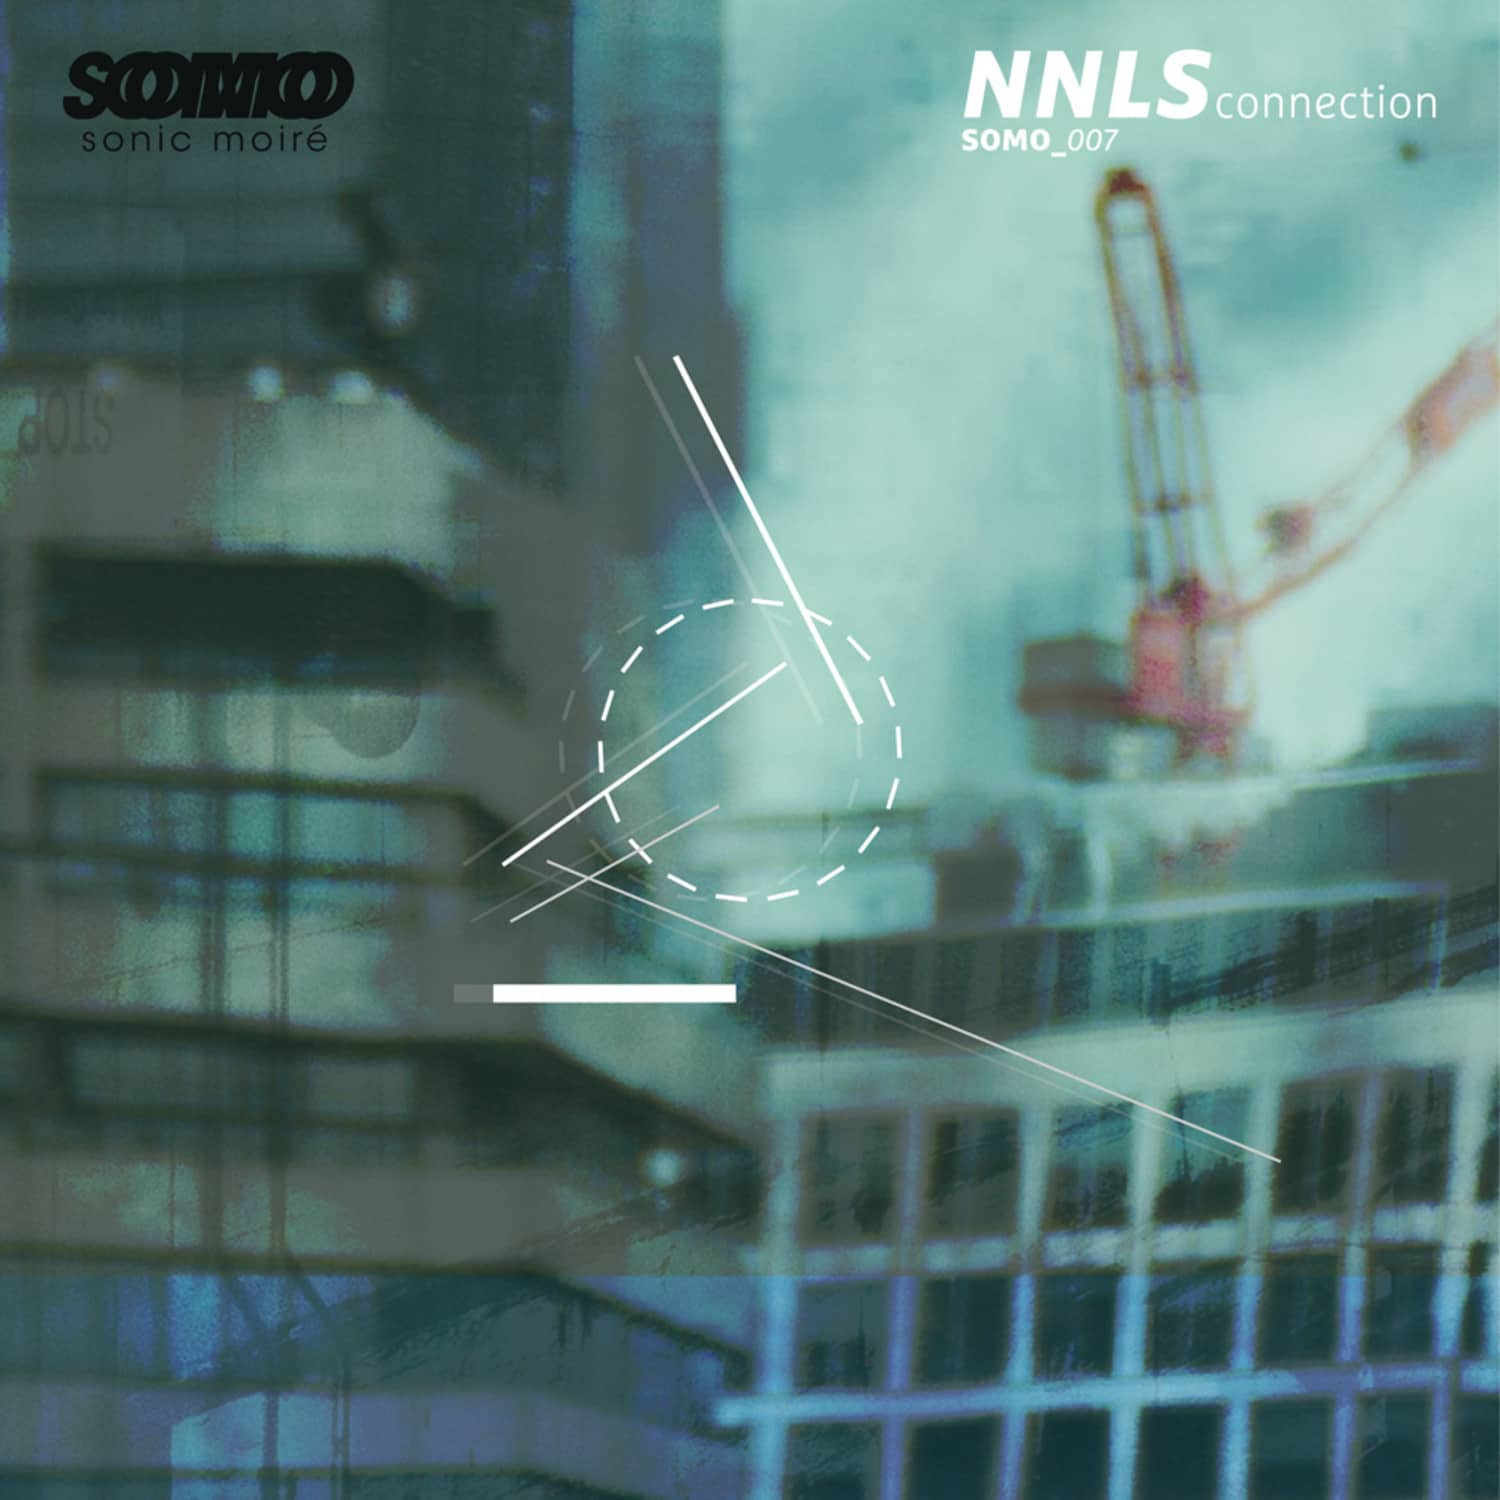 NNLS - CONNECTION